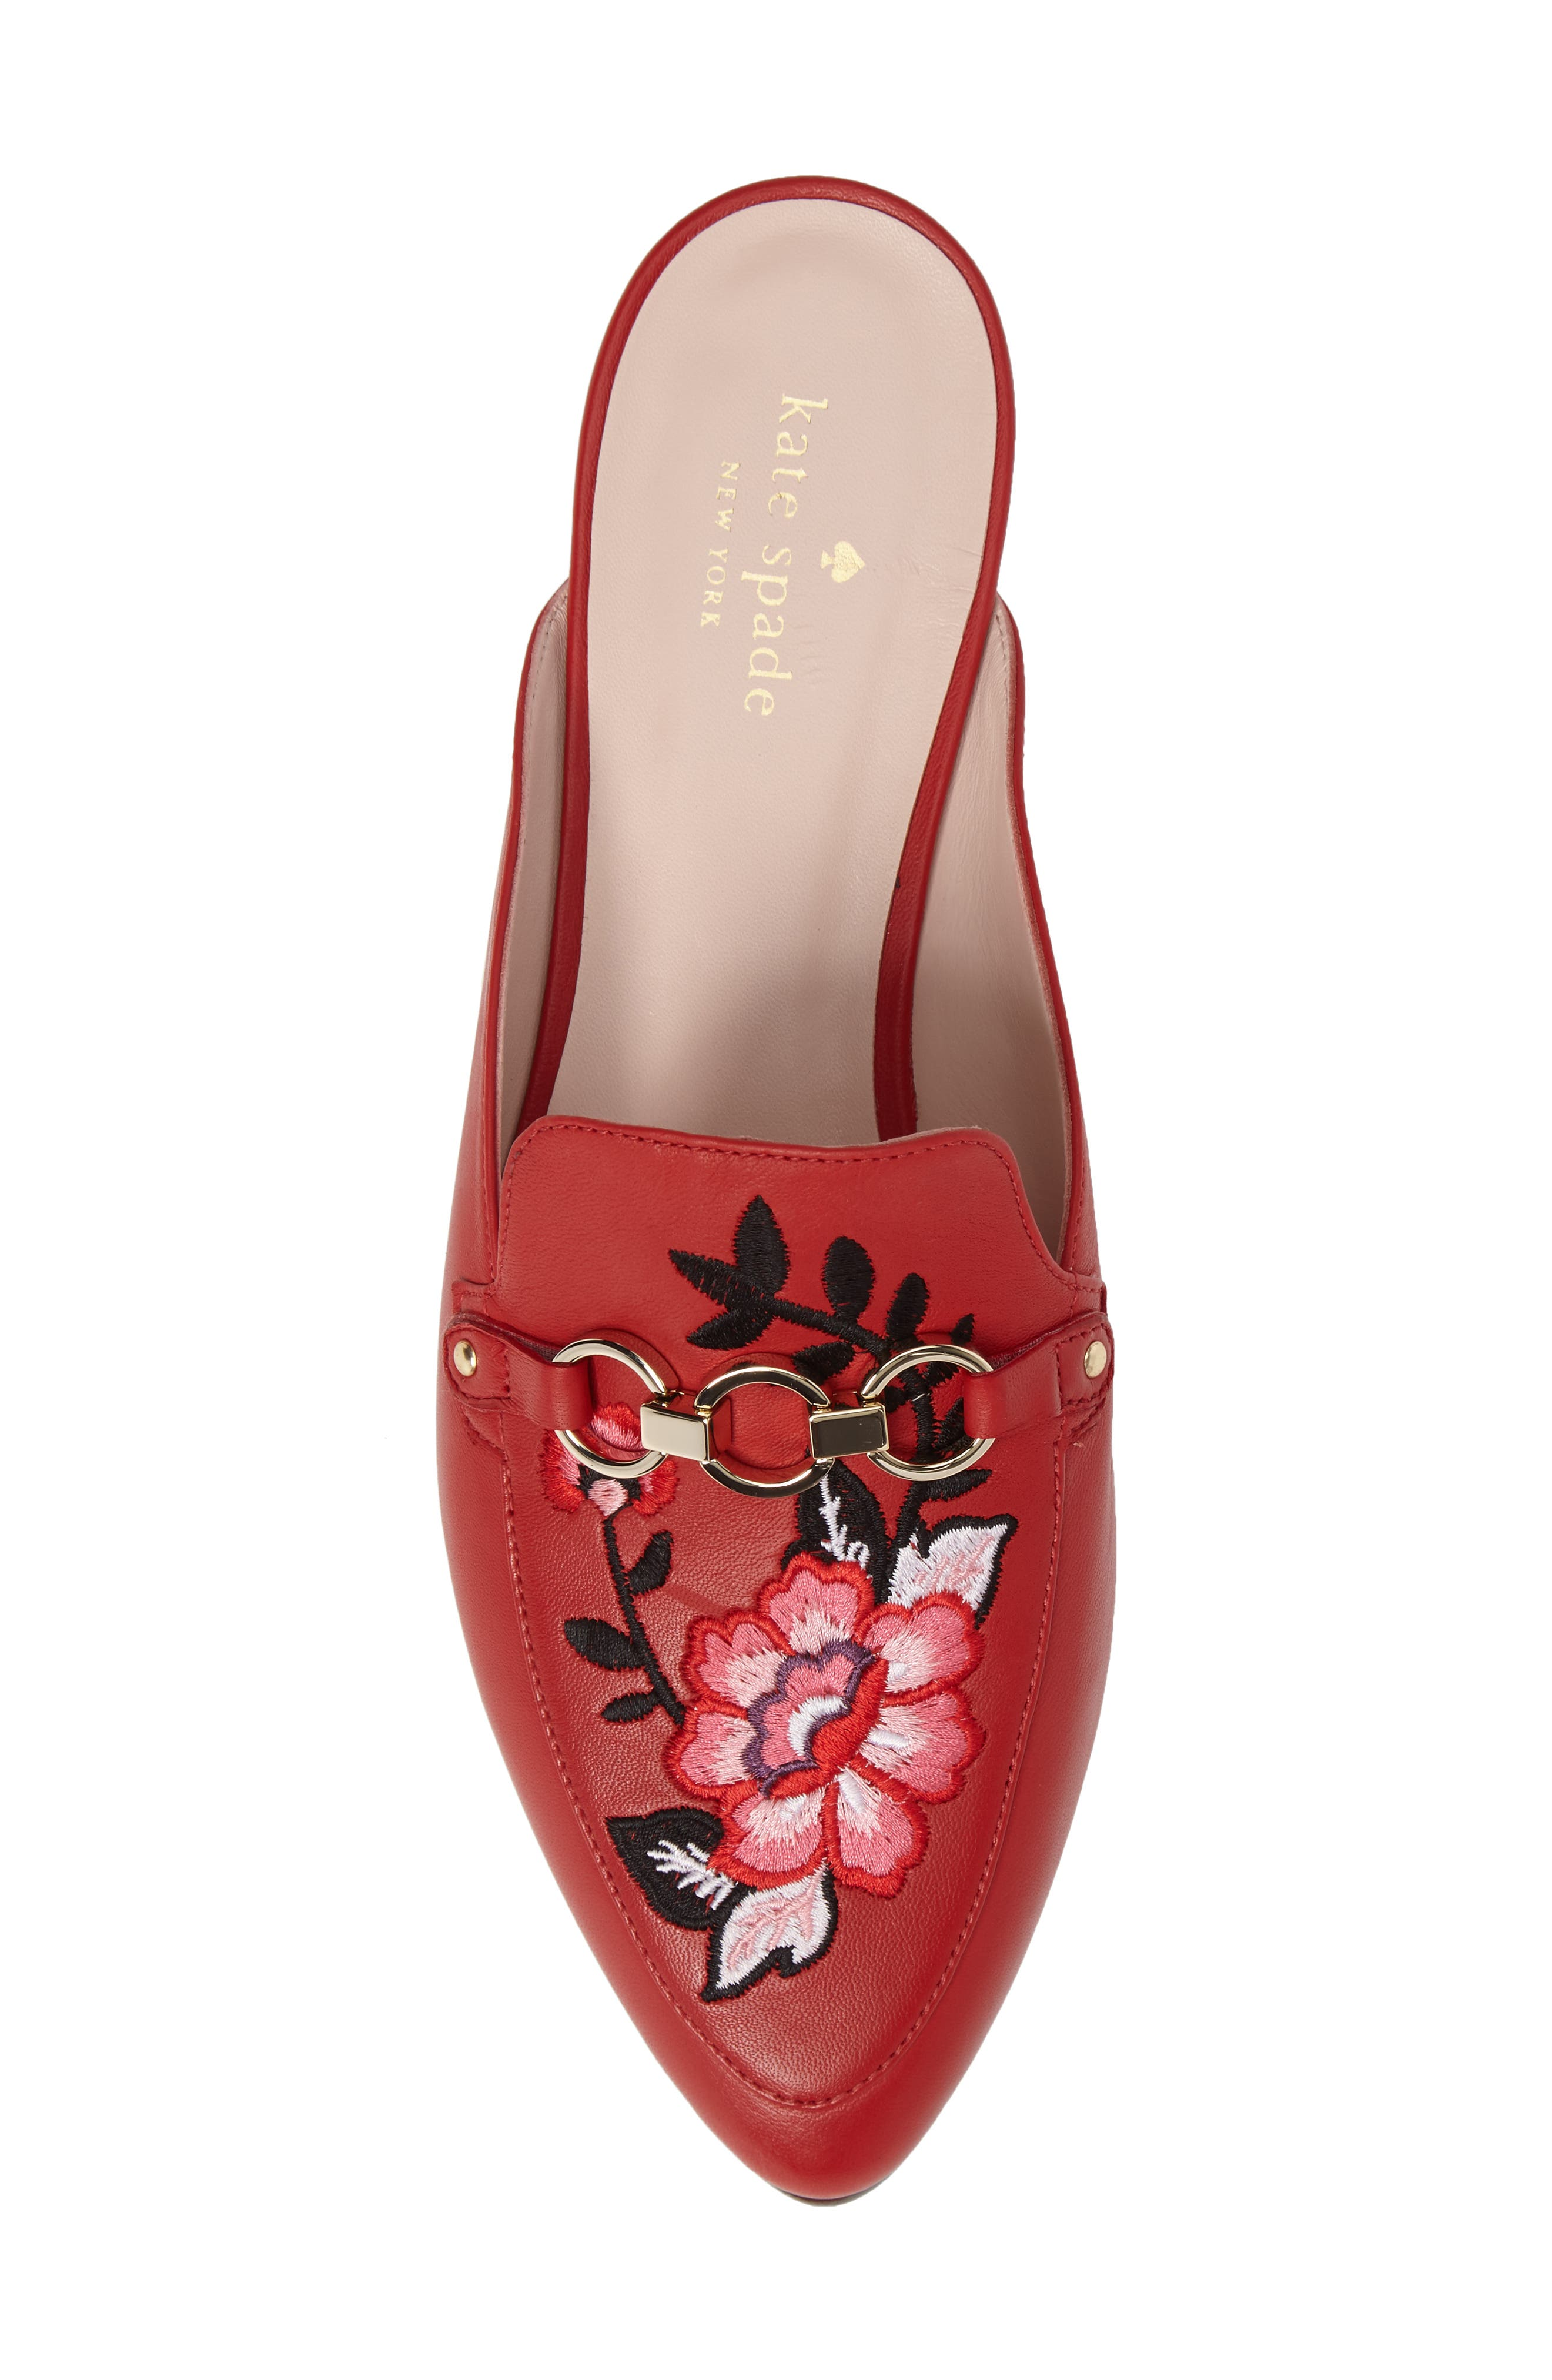 canyon embroidered loafer mule,                             Alternate thumbnail 5, color,                             Maraschino Red Nappa